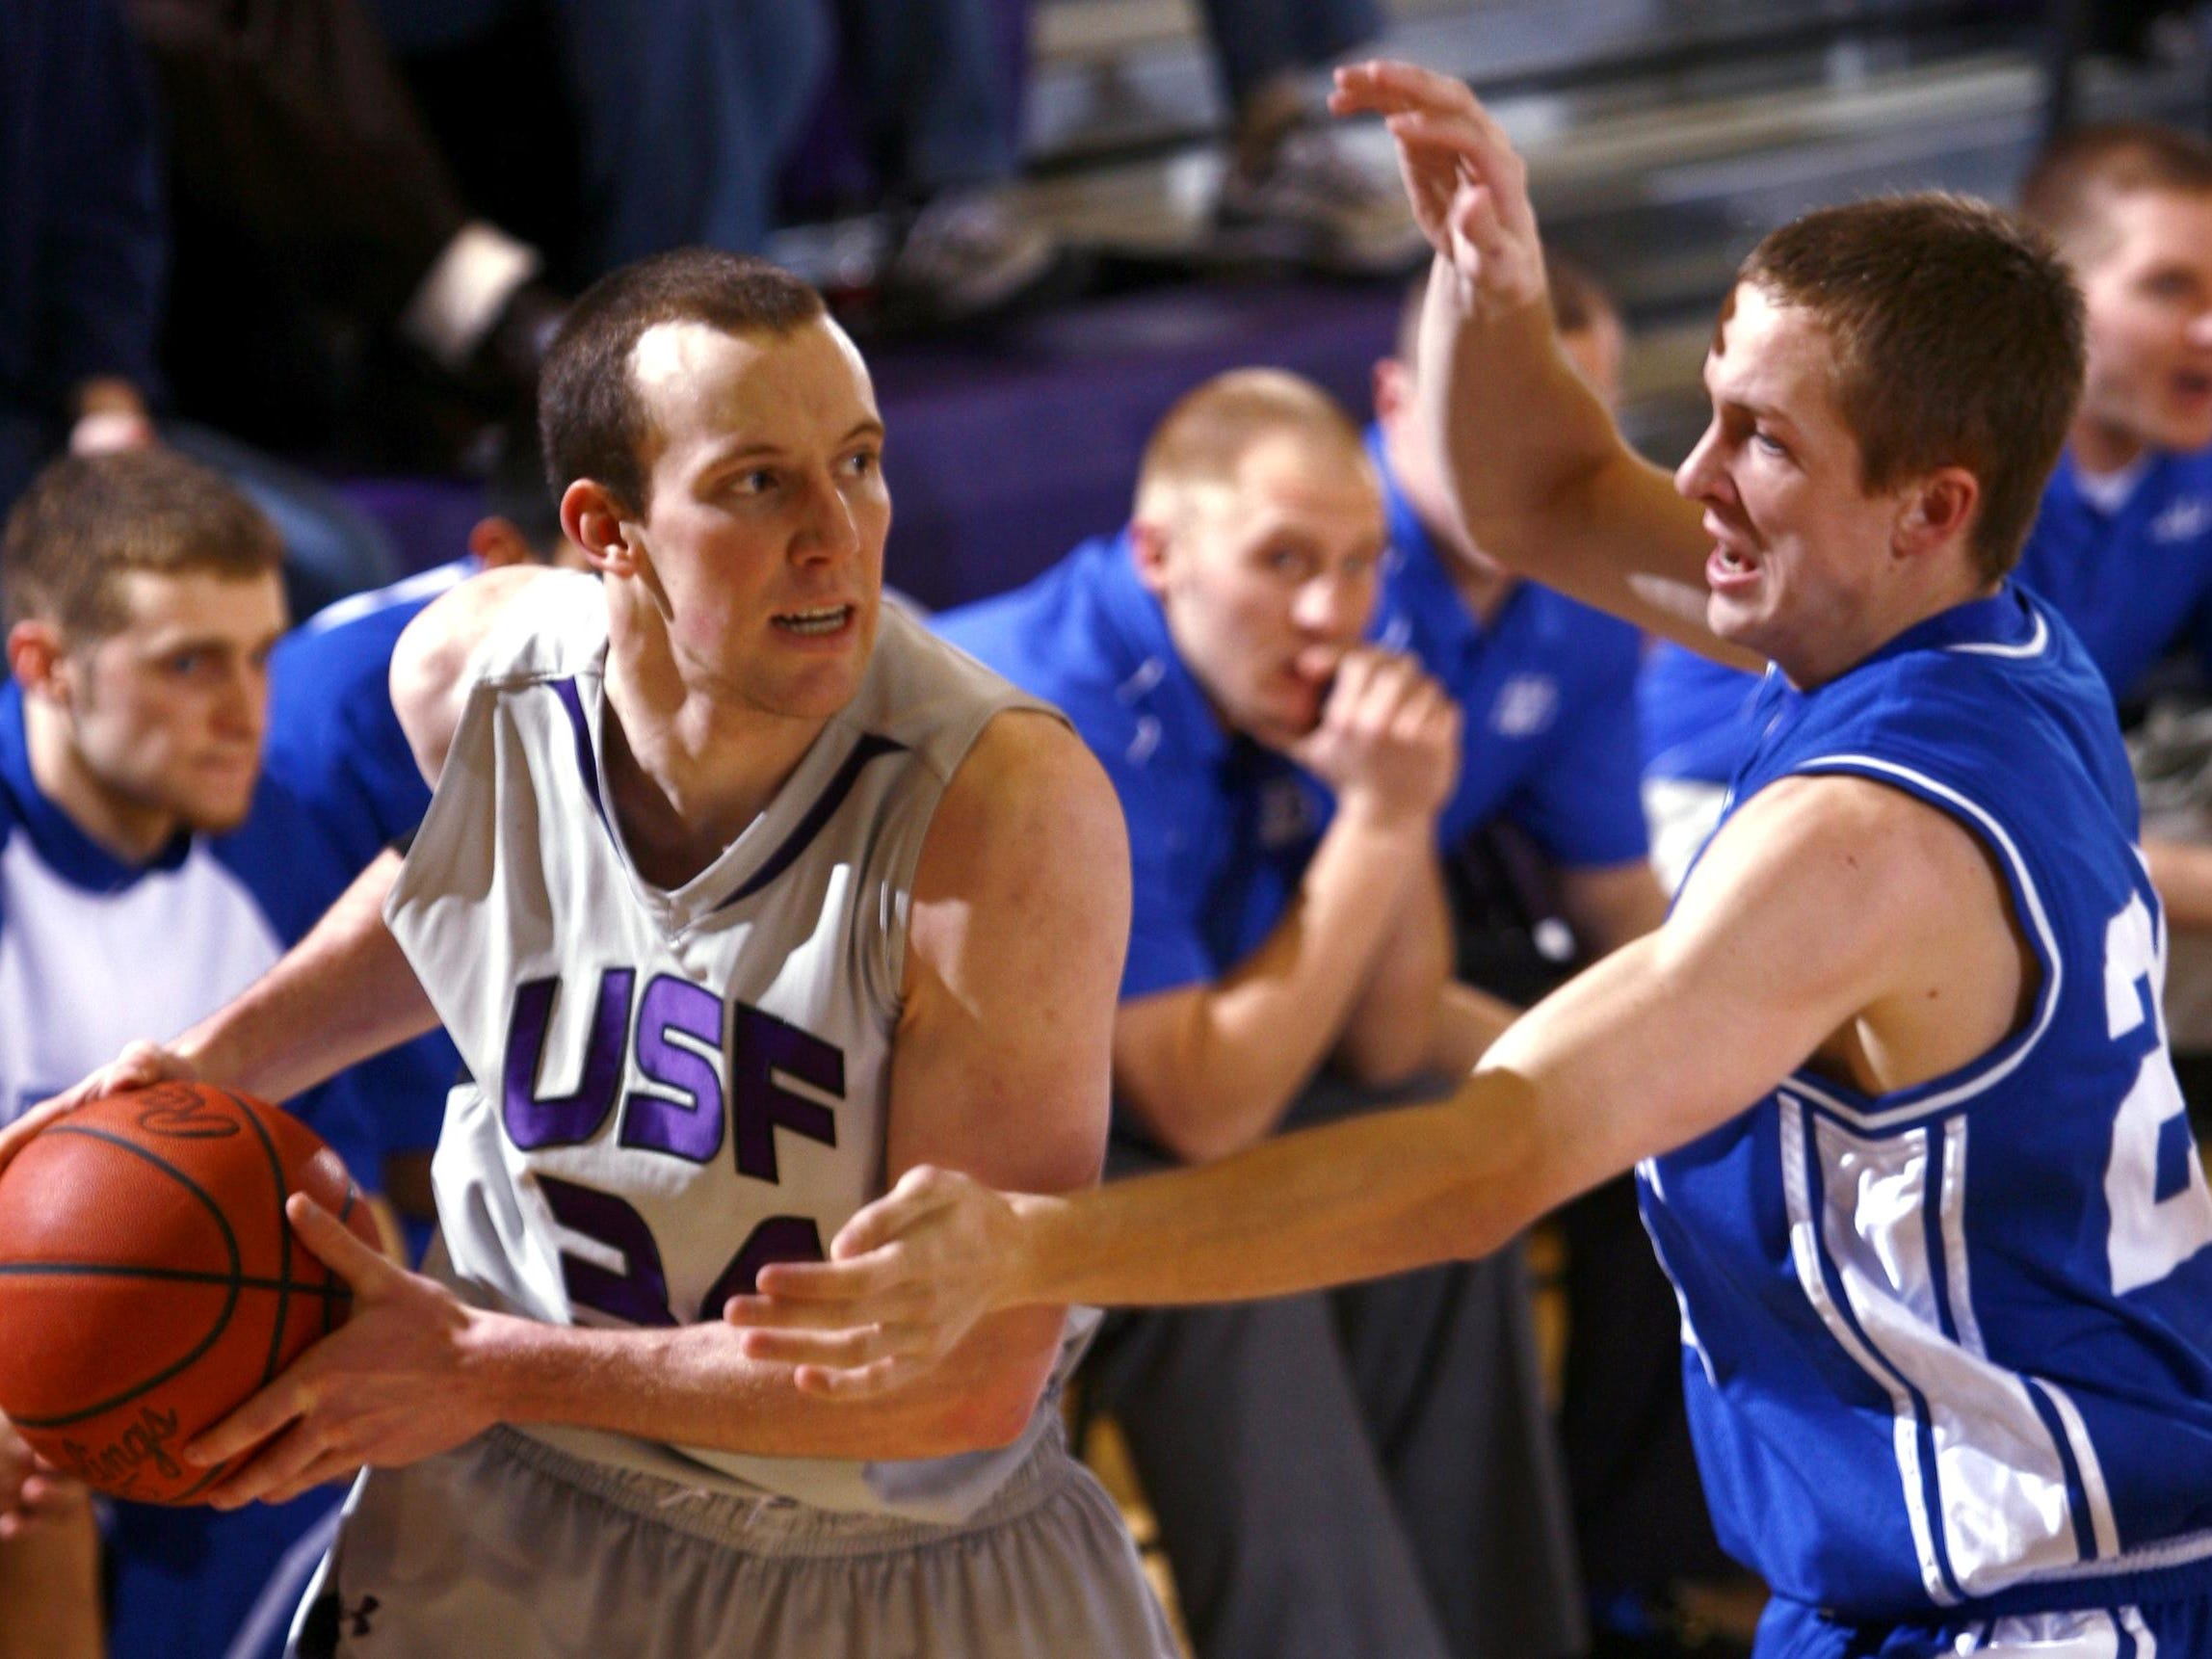 USF's David Maxwell (34) looks for a pass around Dakota Wesleyan's Chase Walder during a game at the Stewart Center in Sioux Falls, S.D., Wednesday, Feb. 2, 2011.(Devin Wagner/Argus Leader)